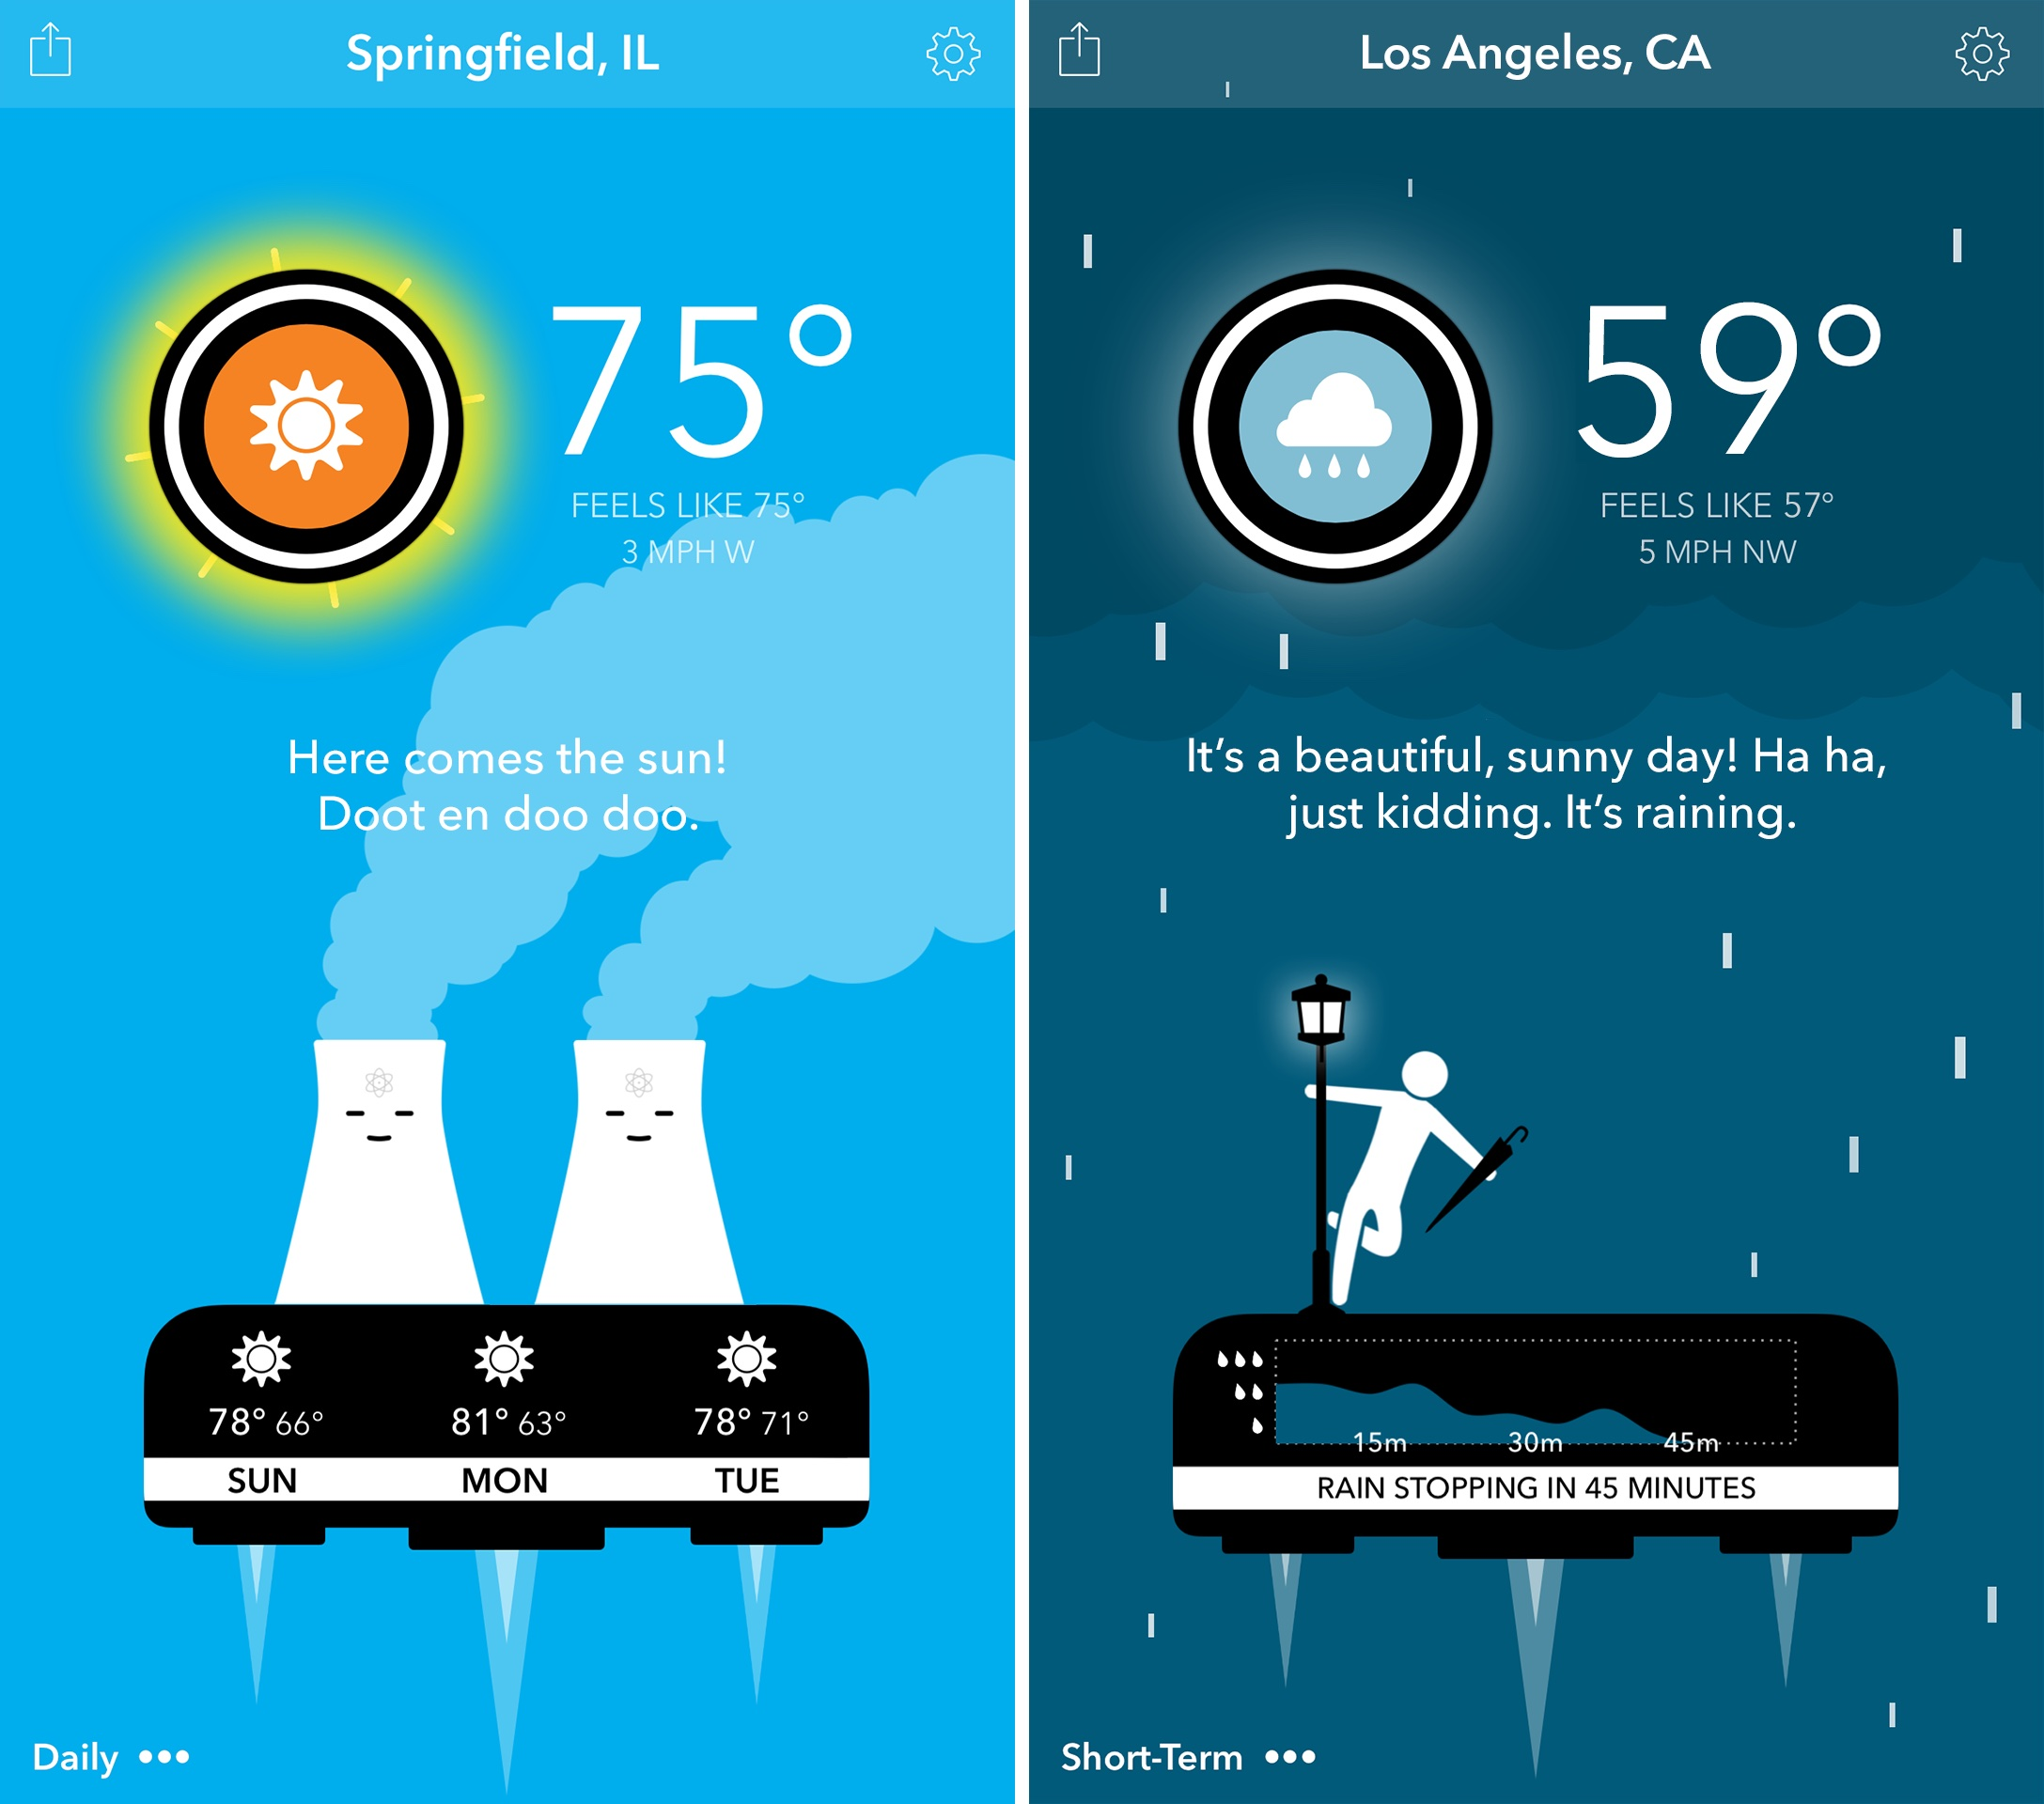 Carrot Weather 1.0 for iOS iPhone screenshot 001